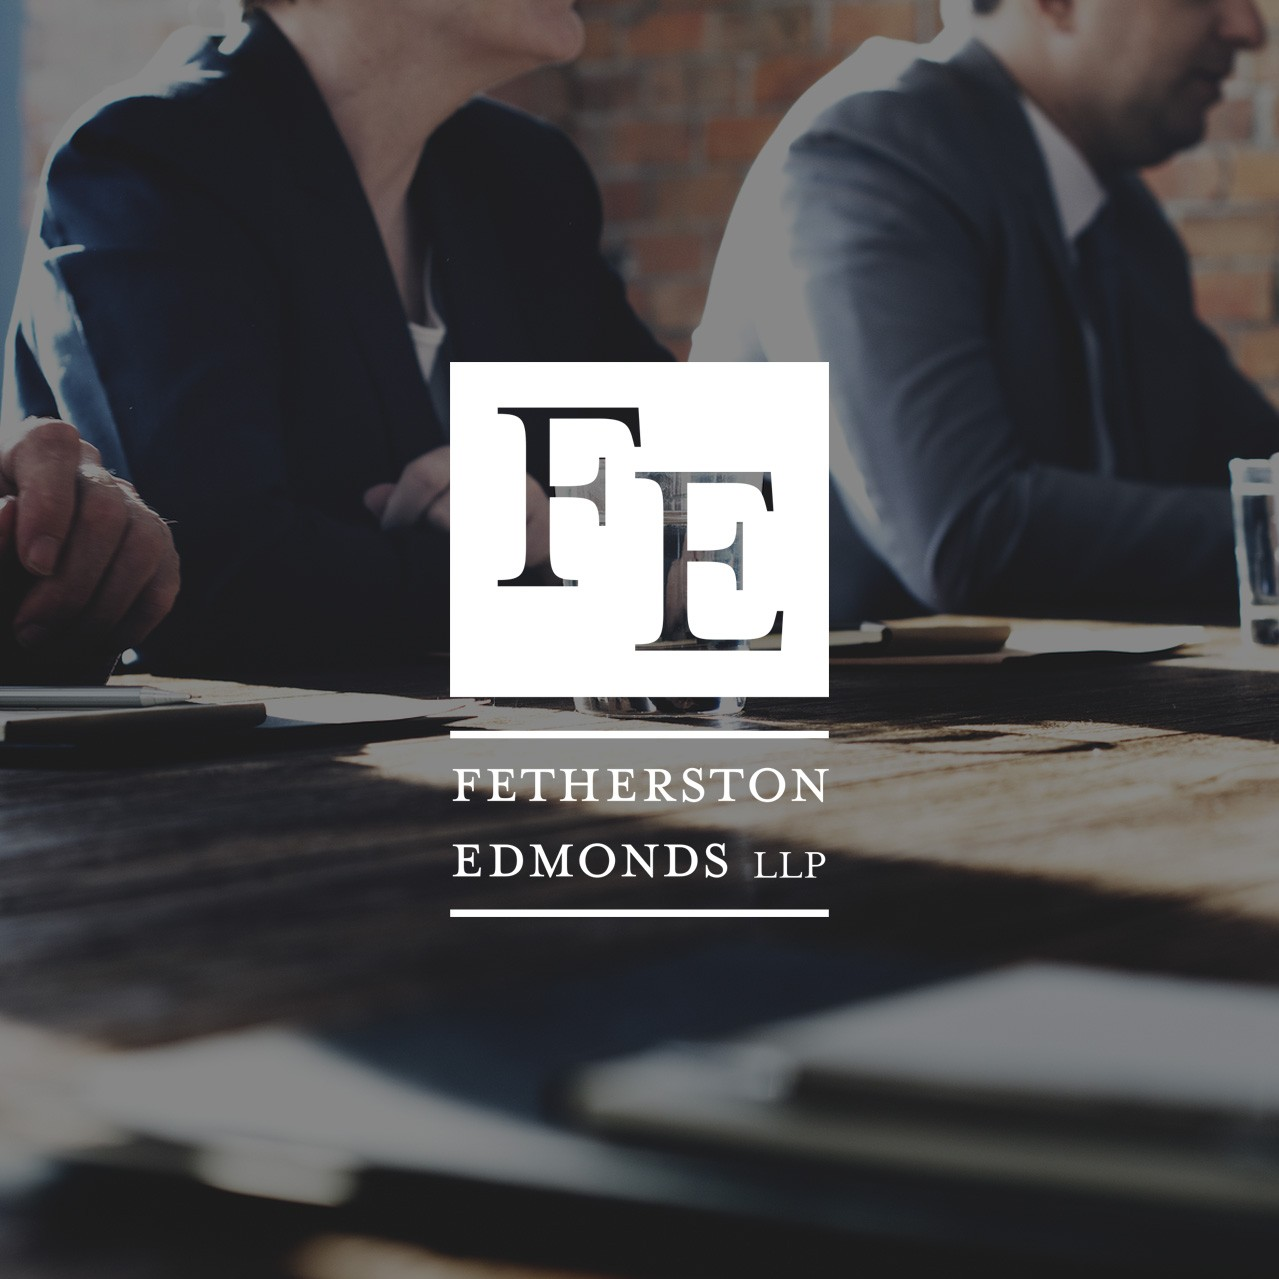 board room meeting stock image with Fetherston Edmonds single color logo overlay